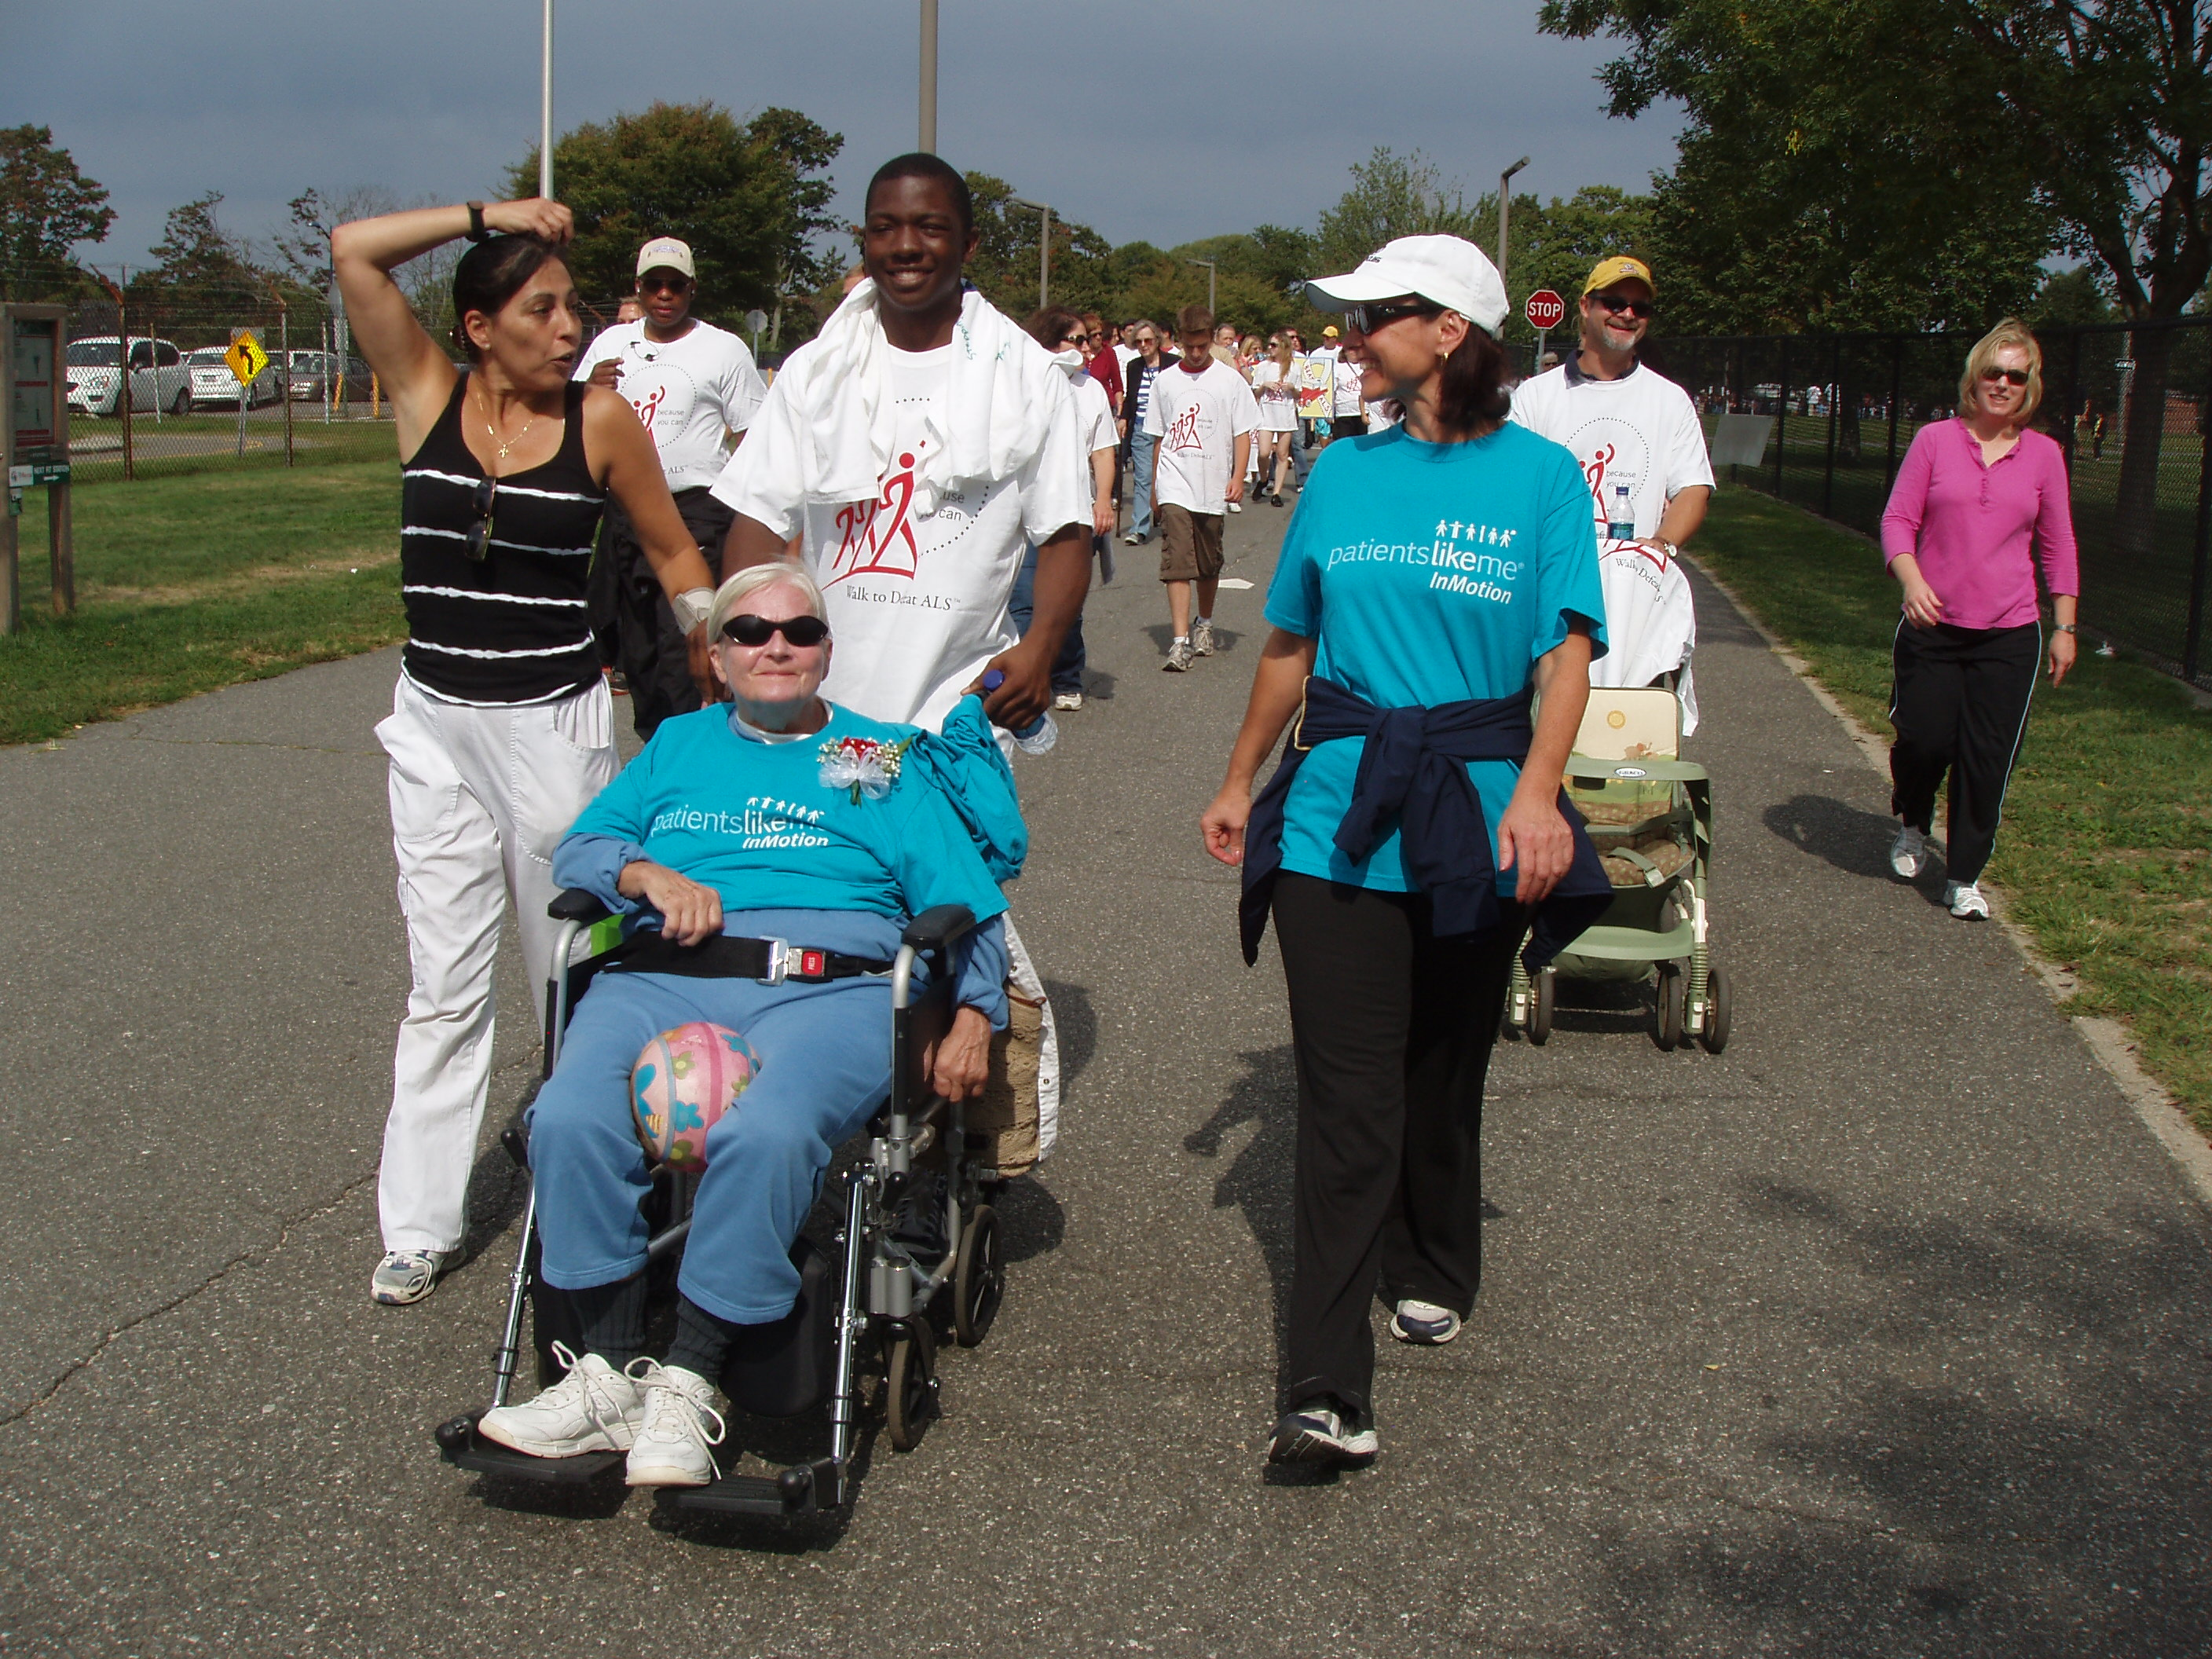 Power Mom's Team at the Walk to Defeat ALS in Long Island, NY